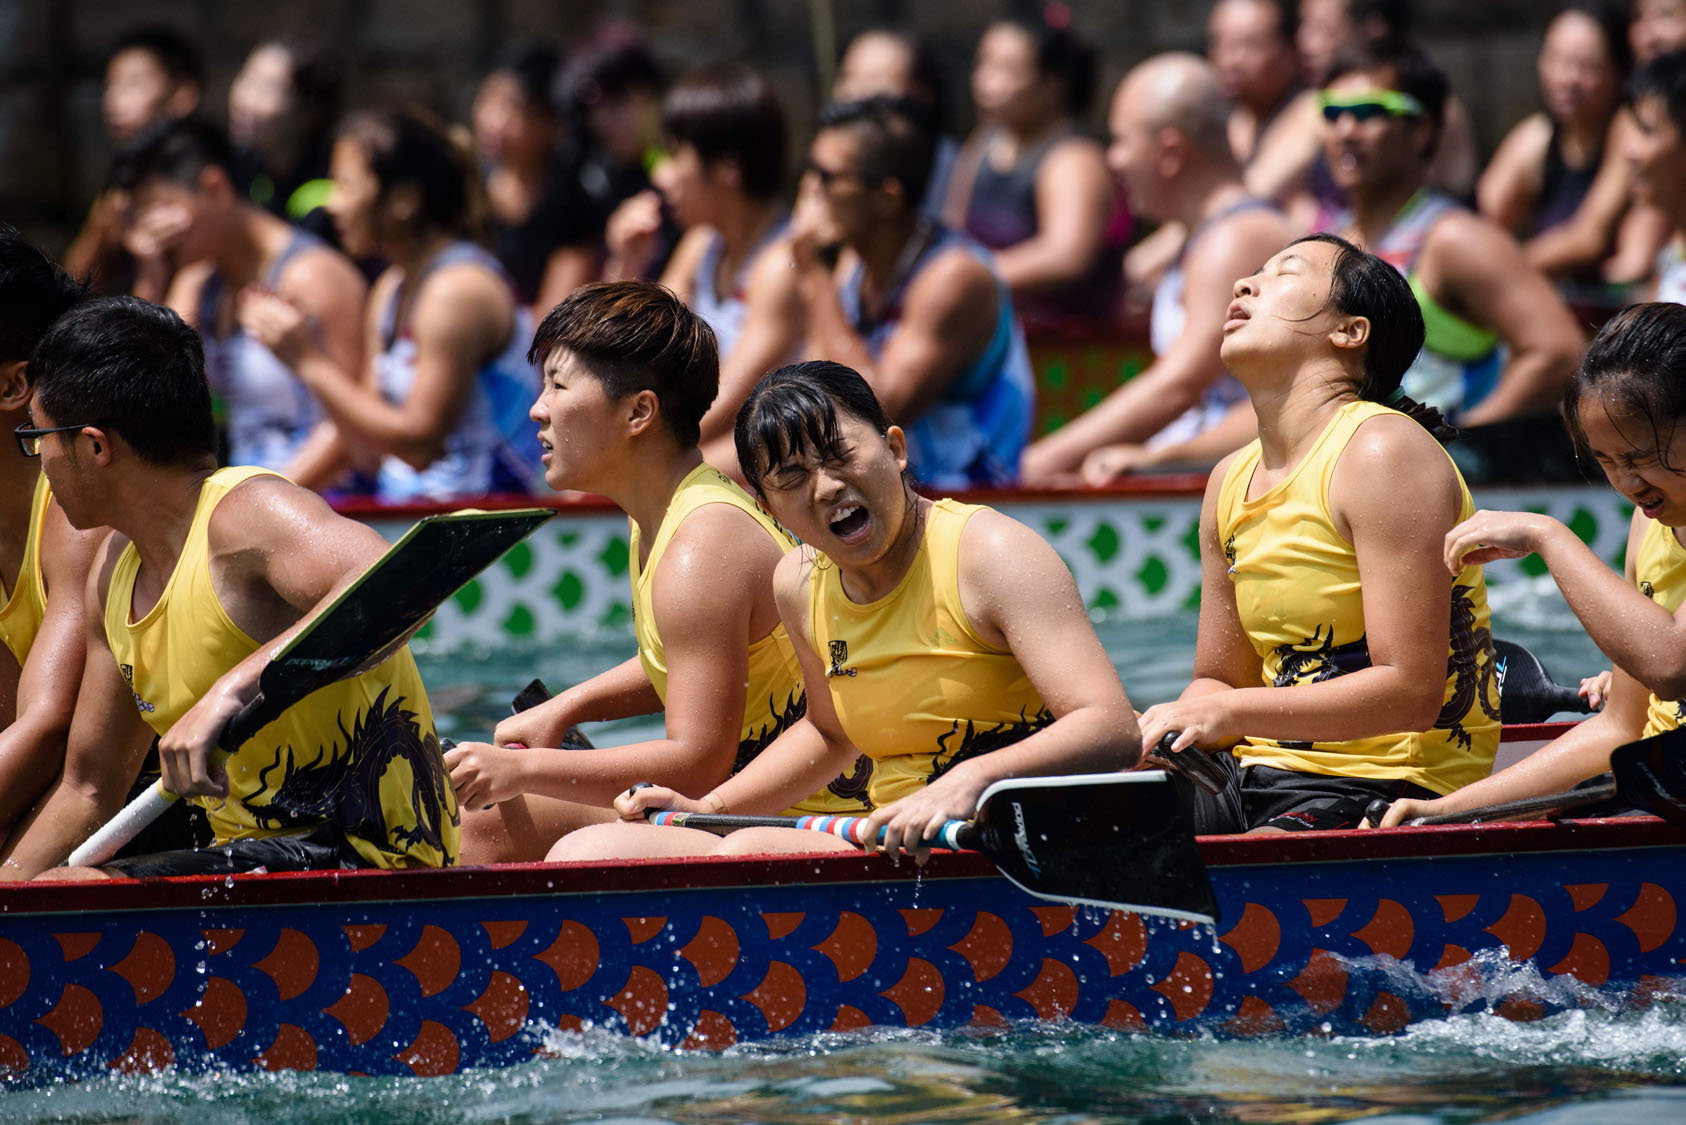 Annual dragon boat race in Hong Kong